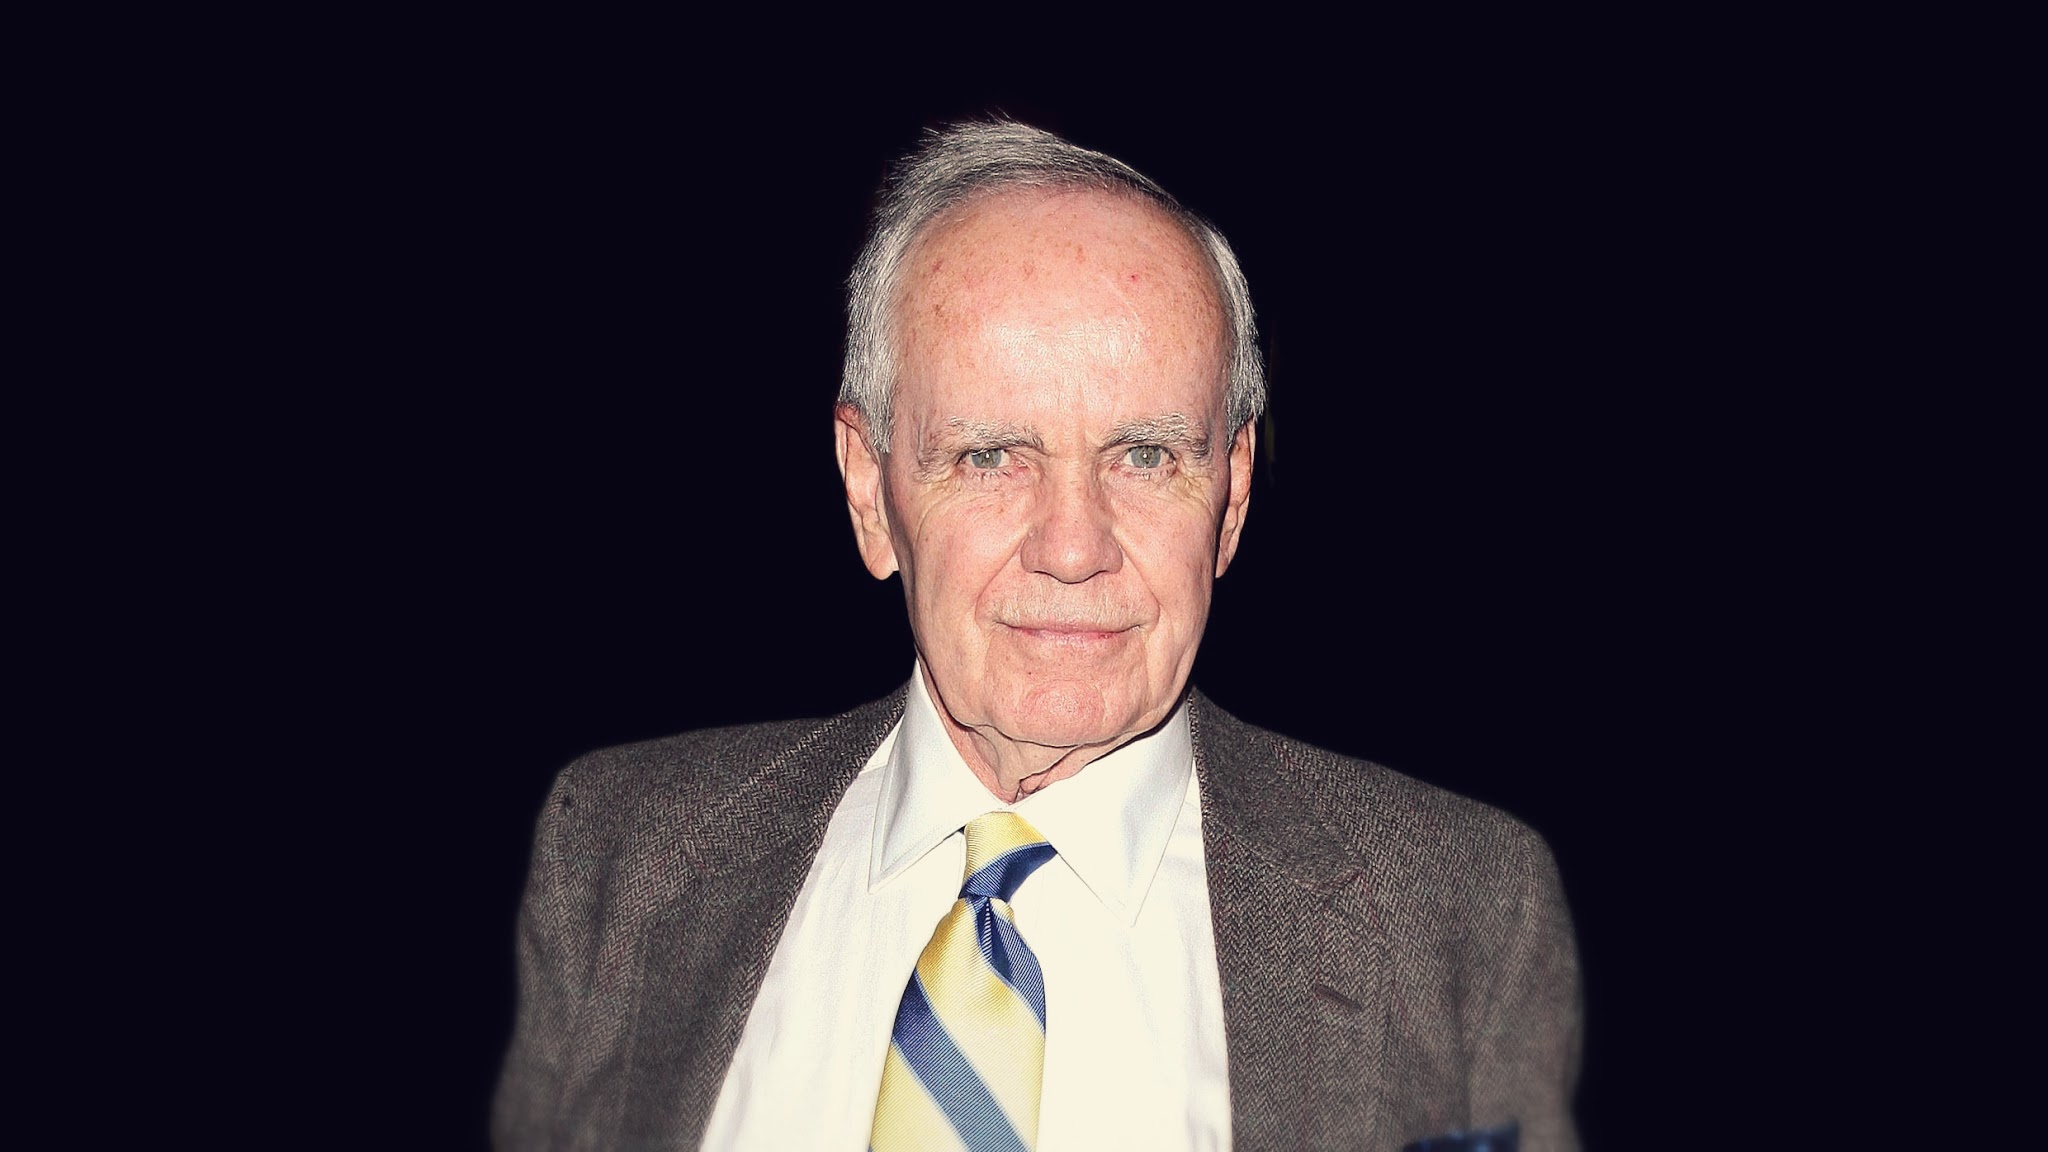 cormac mccarthy View the profiles of professionals named cormac mccarthy on linkedin there are 60+ professionals named cormac mccarthy, who use linkedin to exchange.